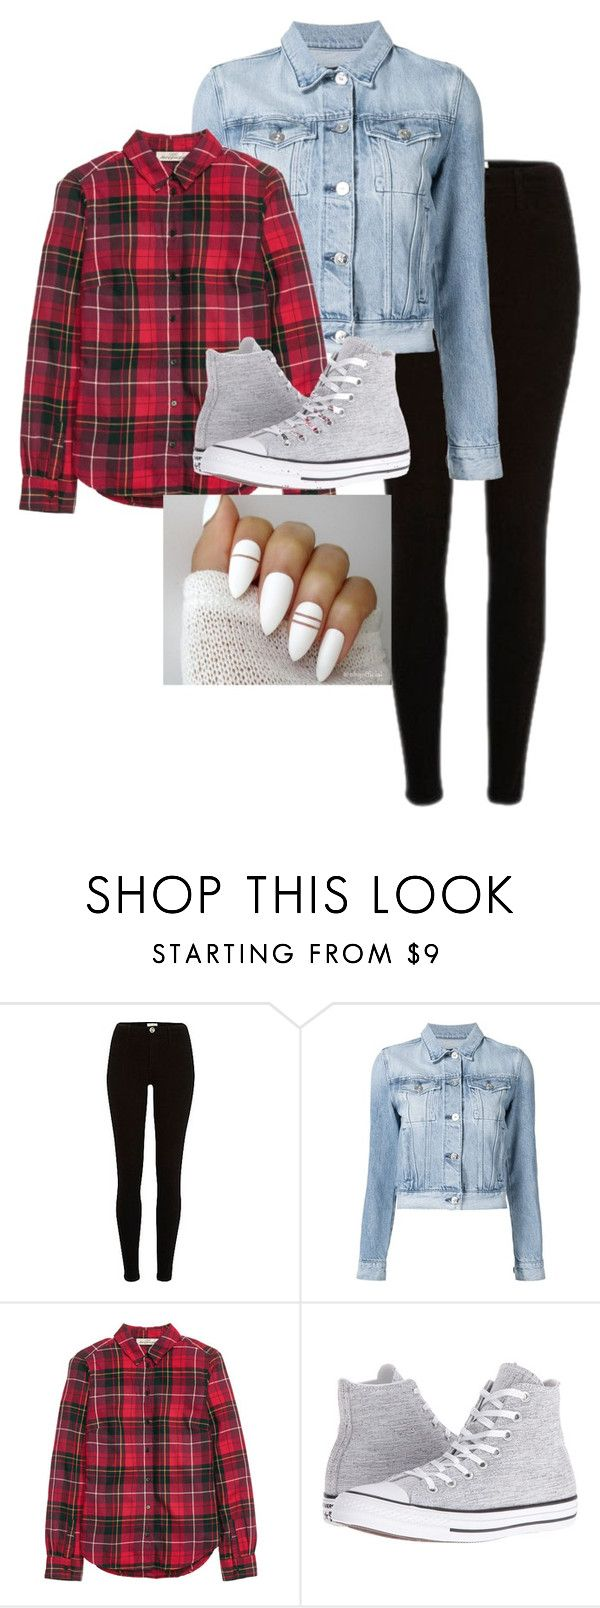 """Just simple"" by yam-chip ❤ liked on Polyvore featuring 3x1 and Converse"